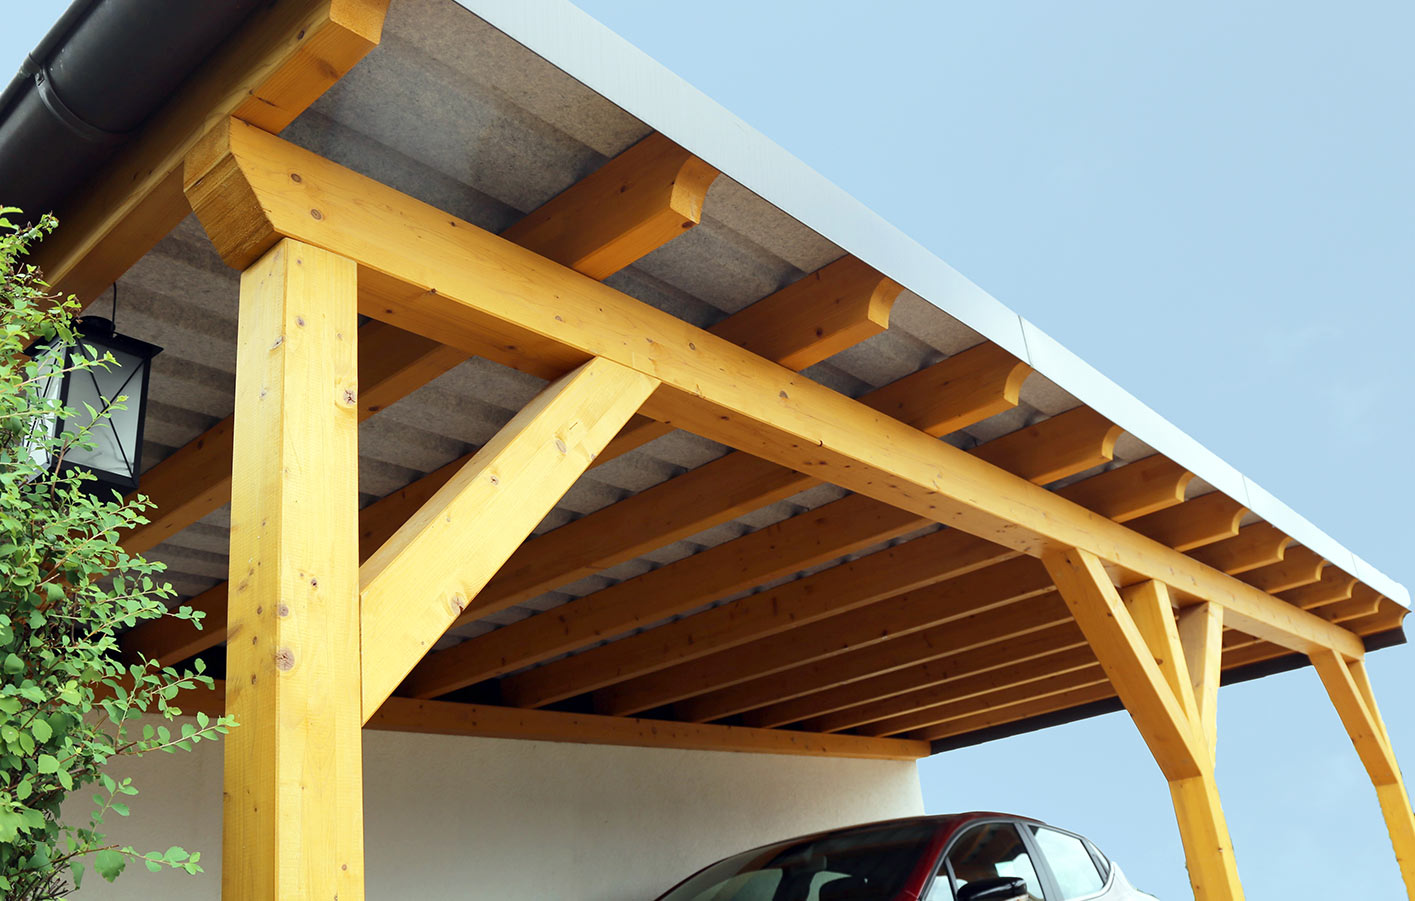 2019_GI-999985688_Carport_Holz_MS.jpg